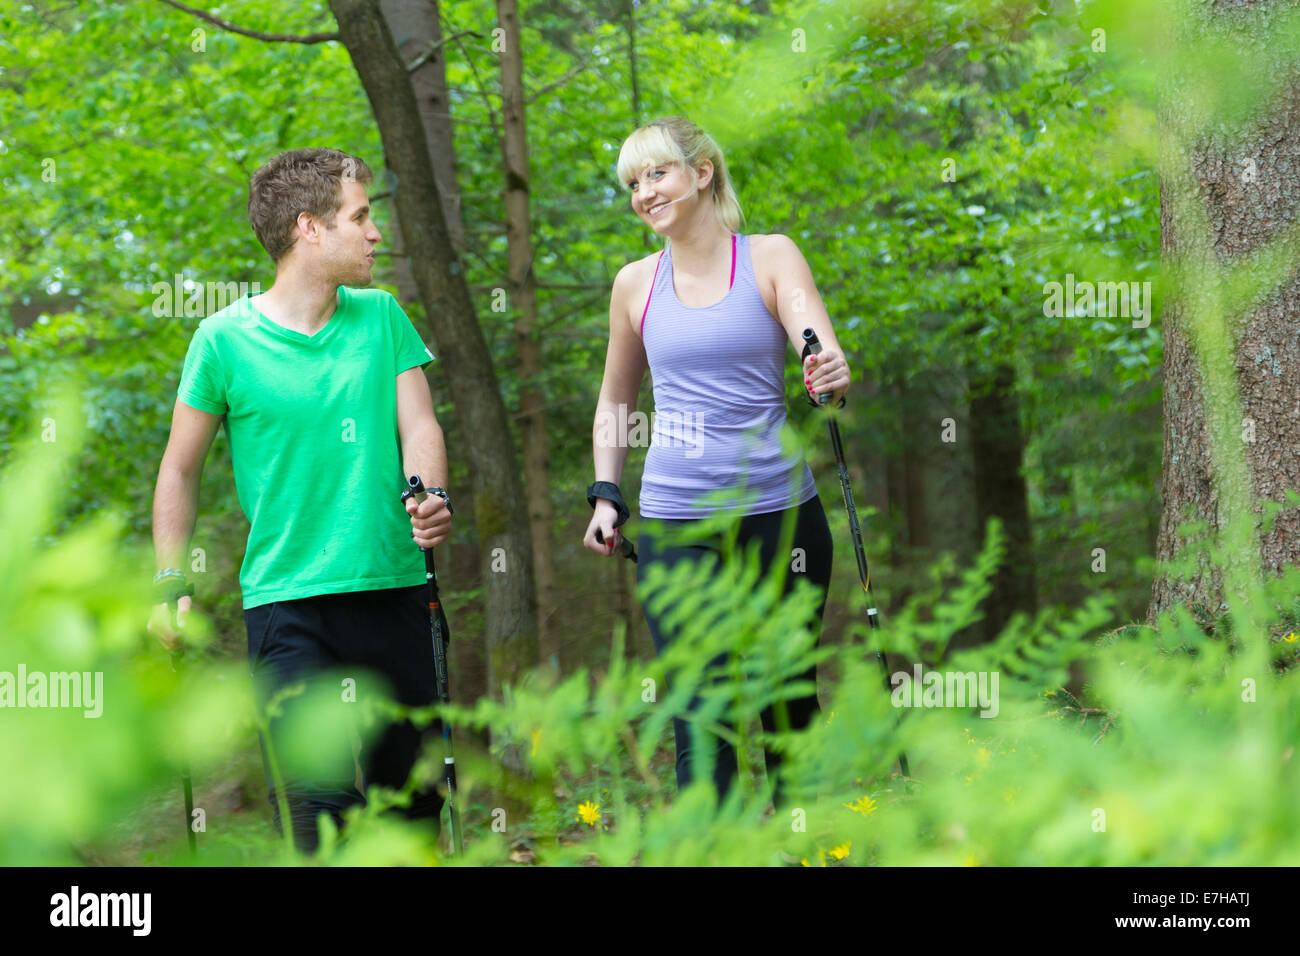 Young sporty active couple with hiking sticks walking in nature. Active lifestyle. Activities and recreation outdoors. - Stock Image